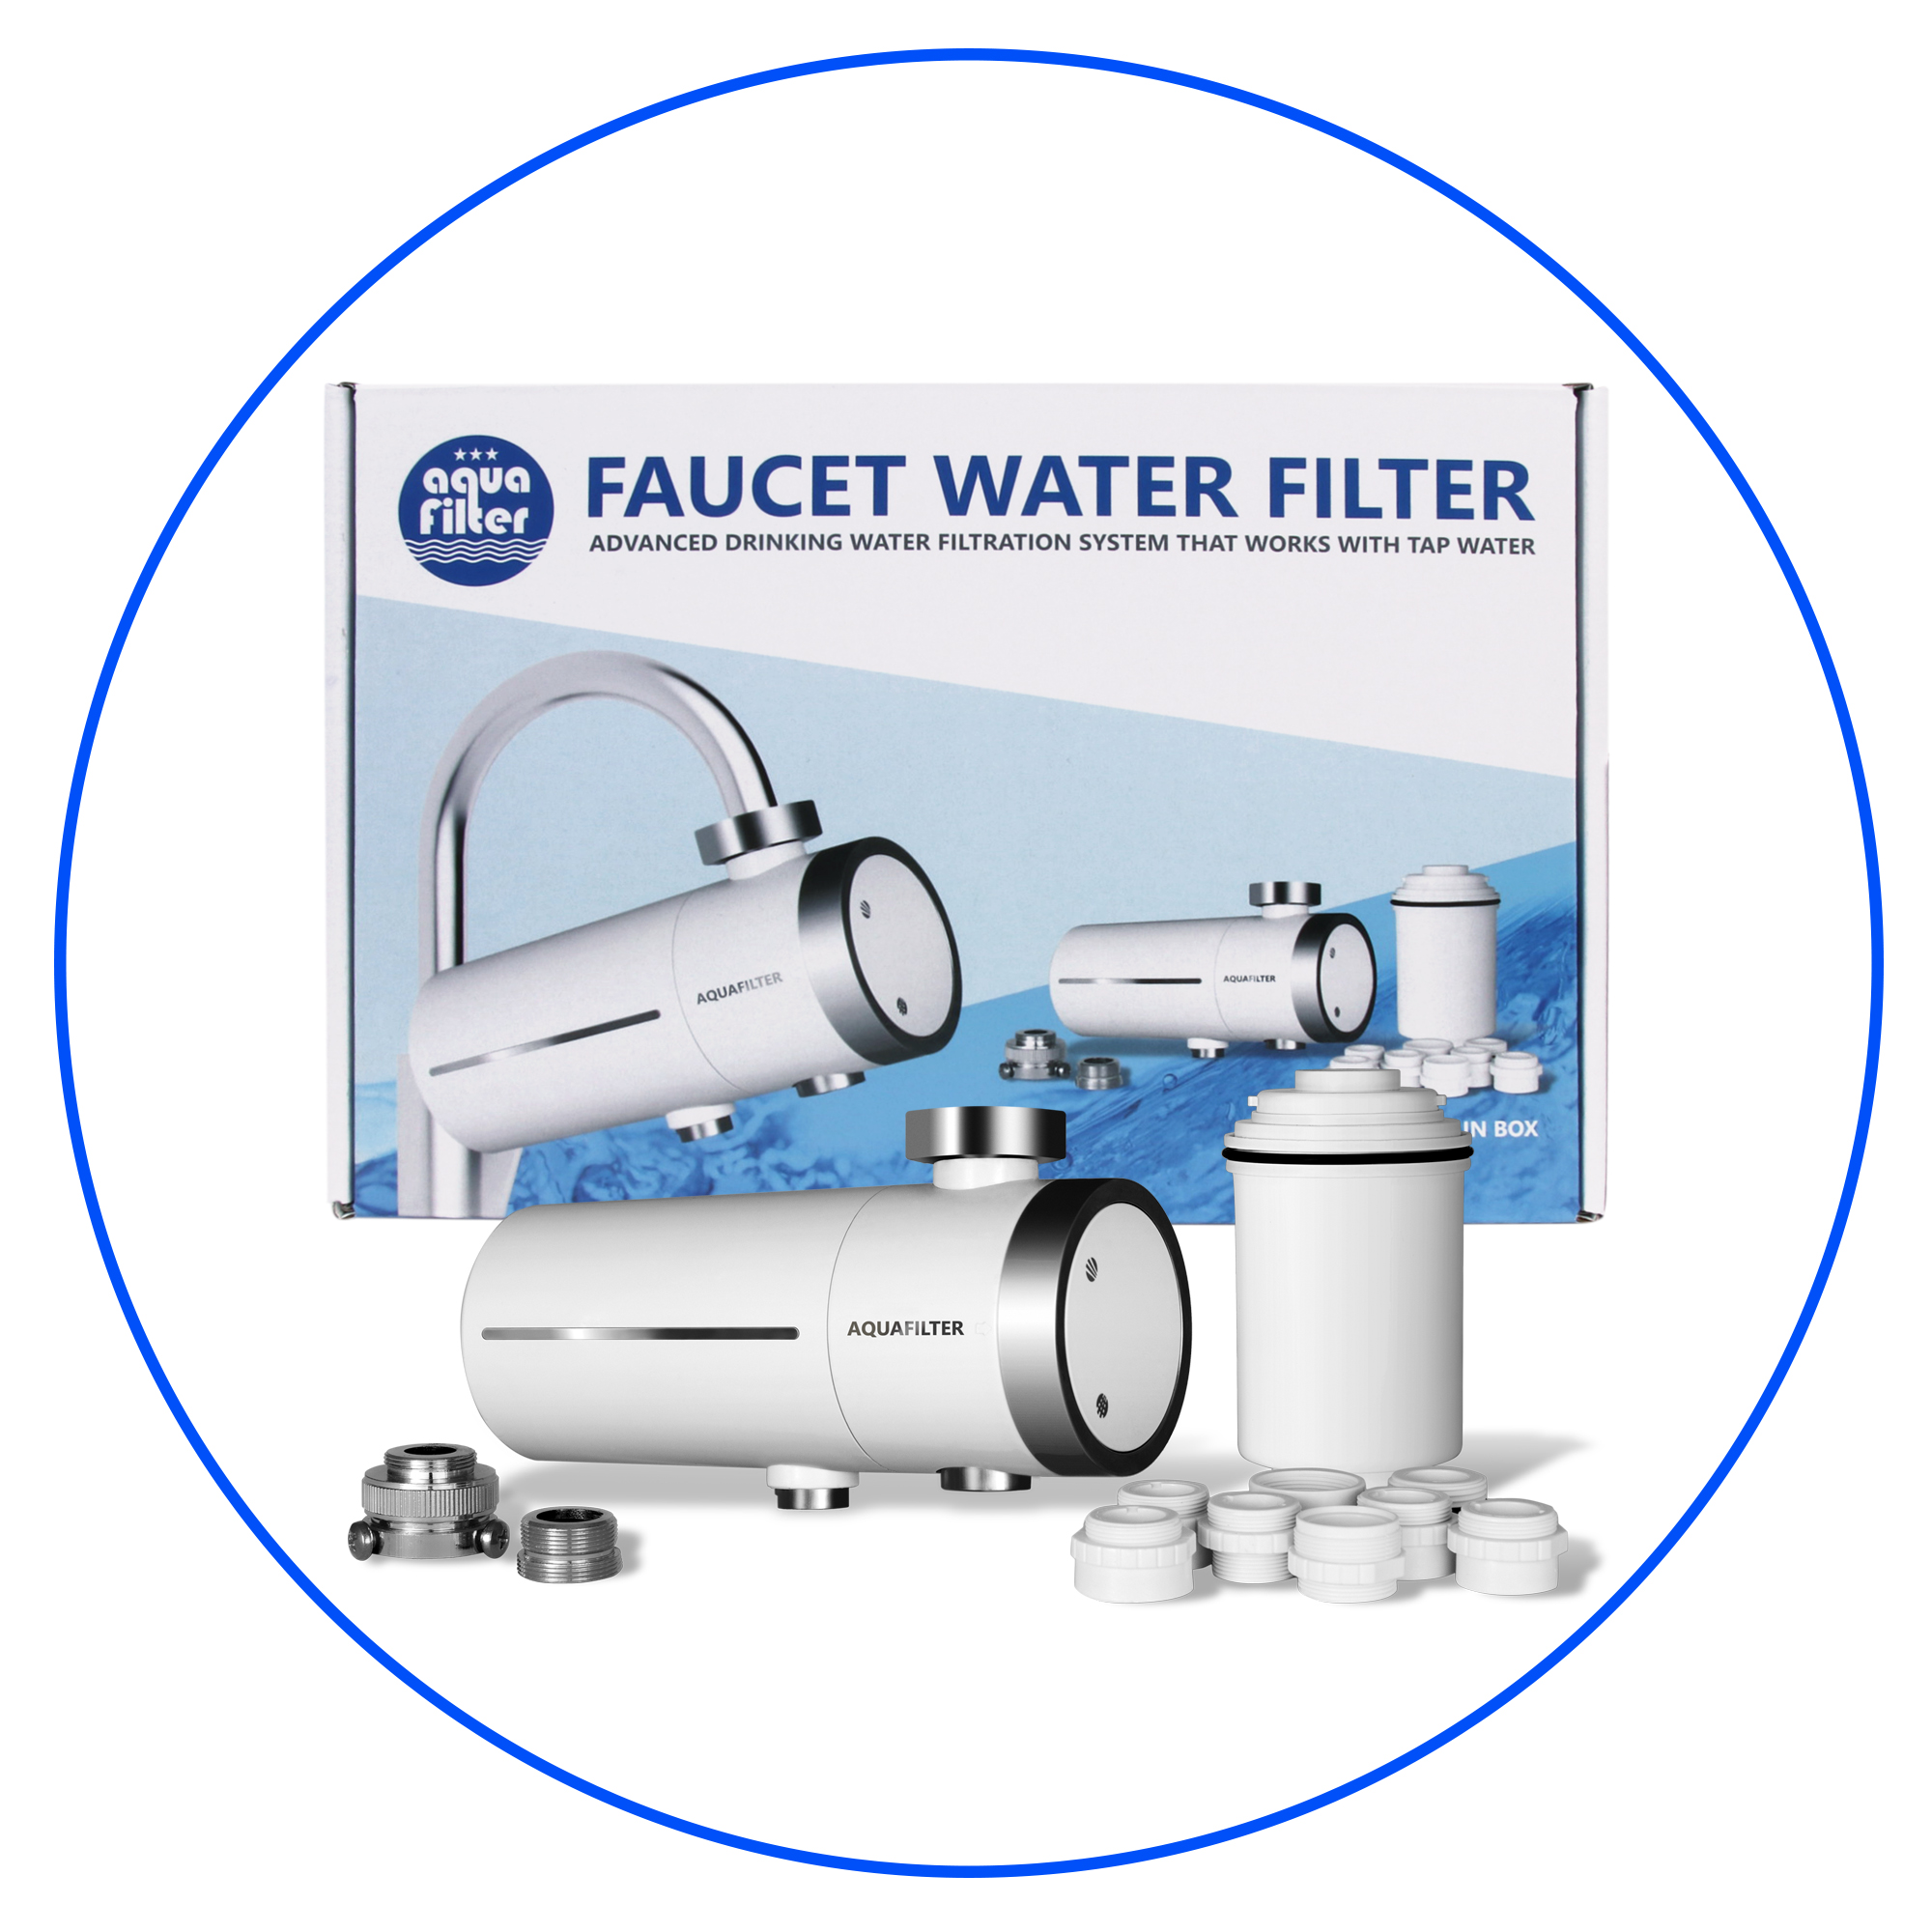 Faucet & Countertop Water Filters | Aquafilter